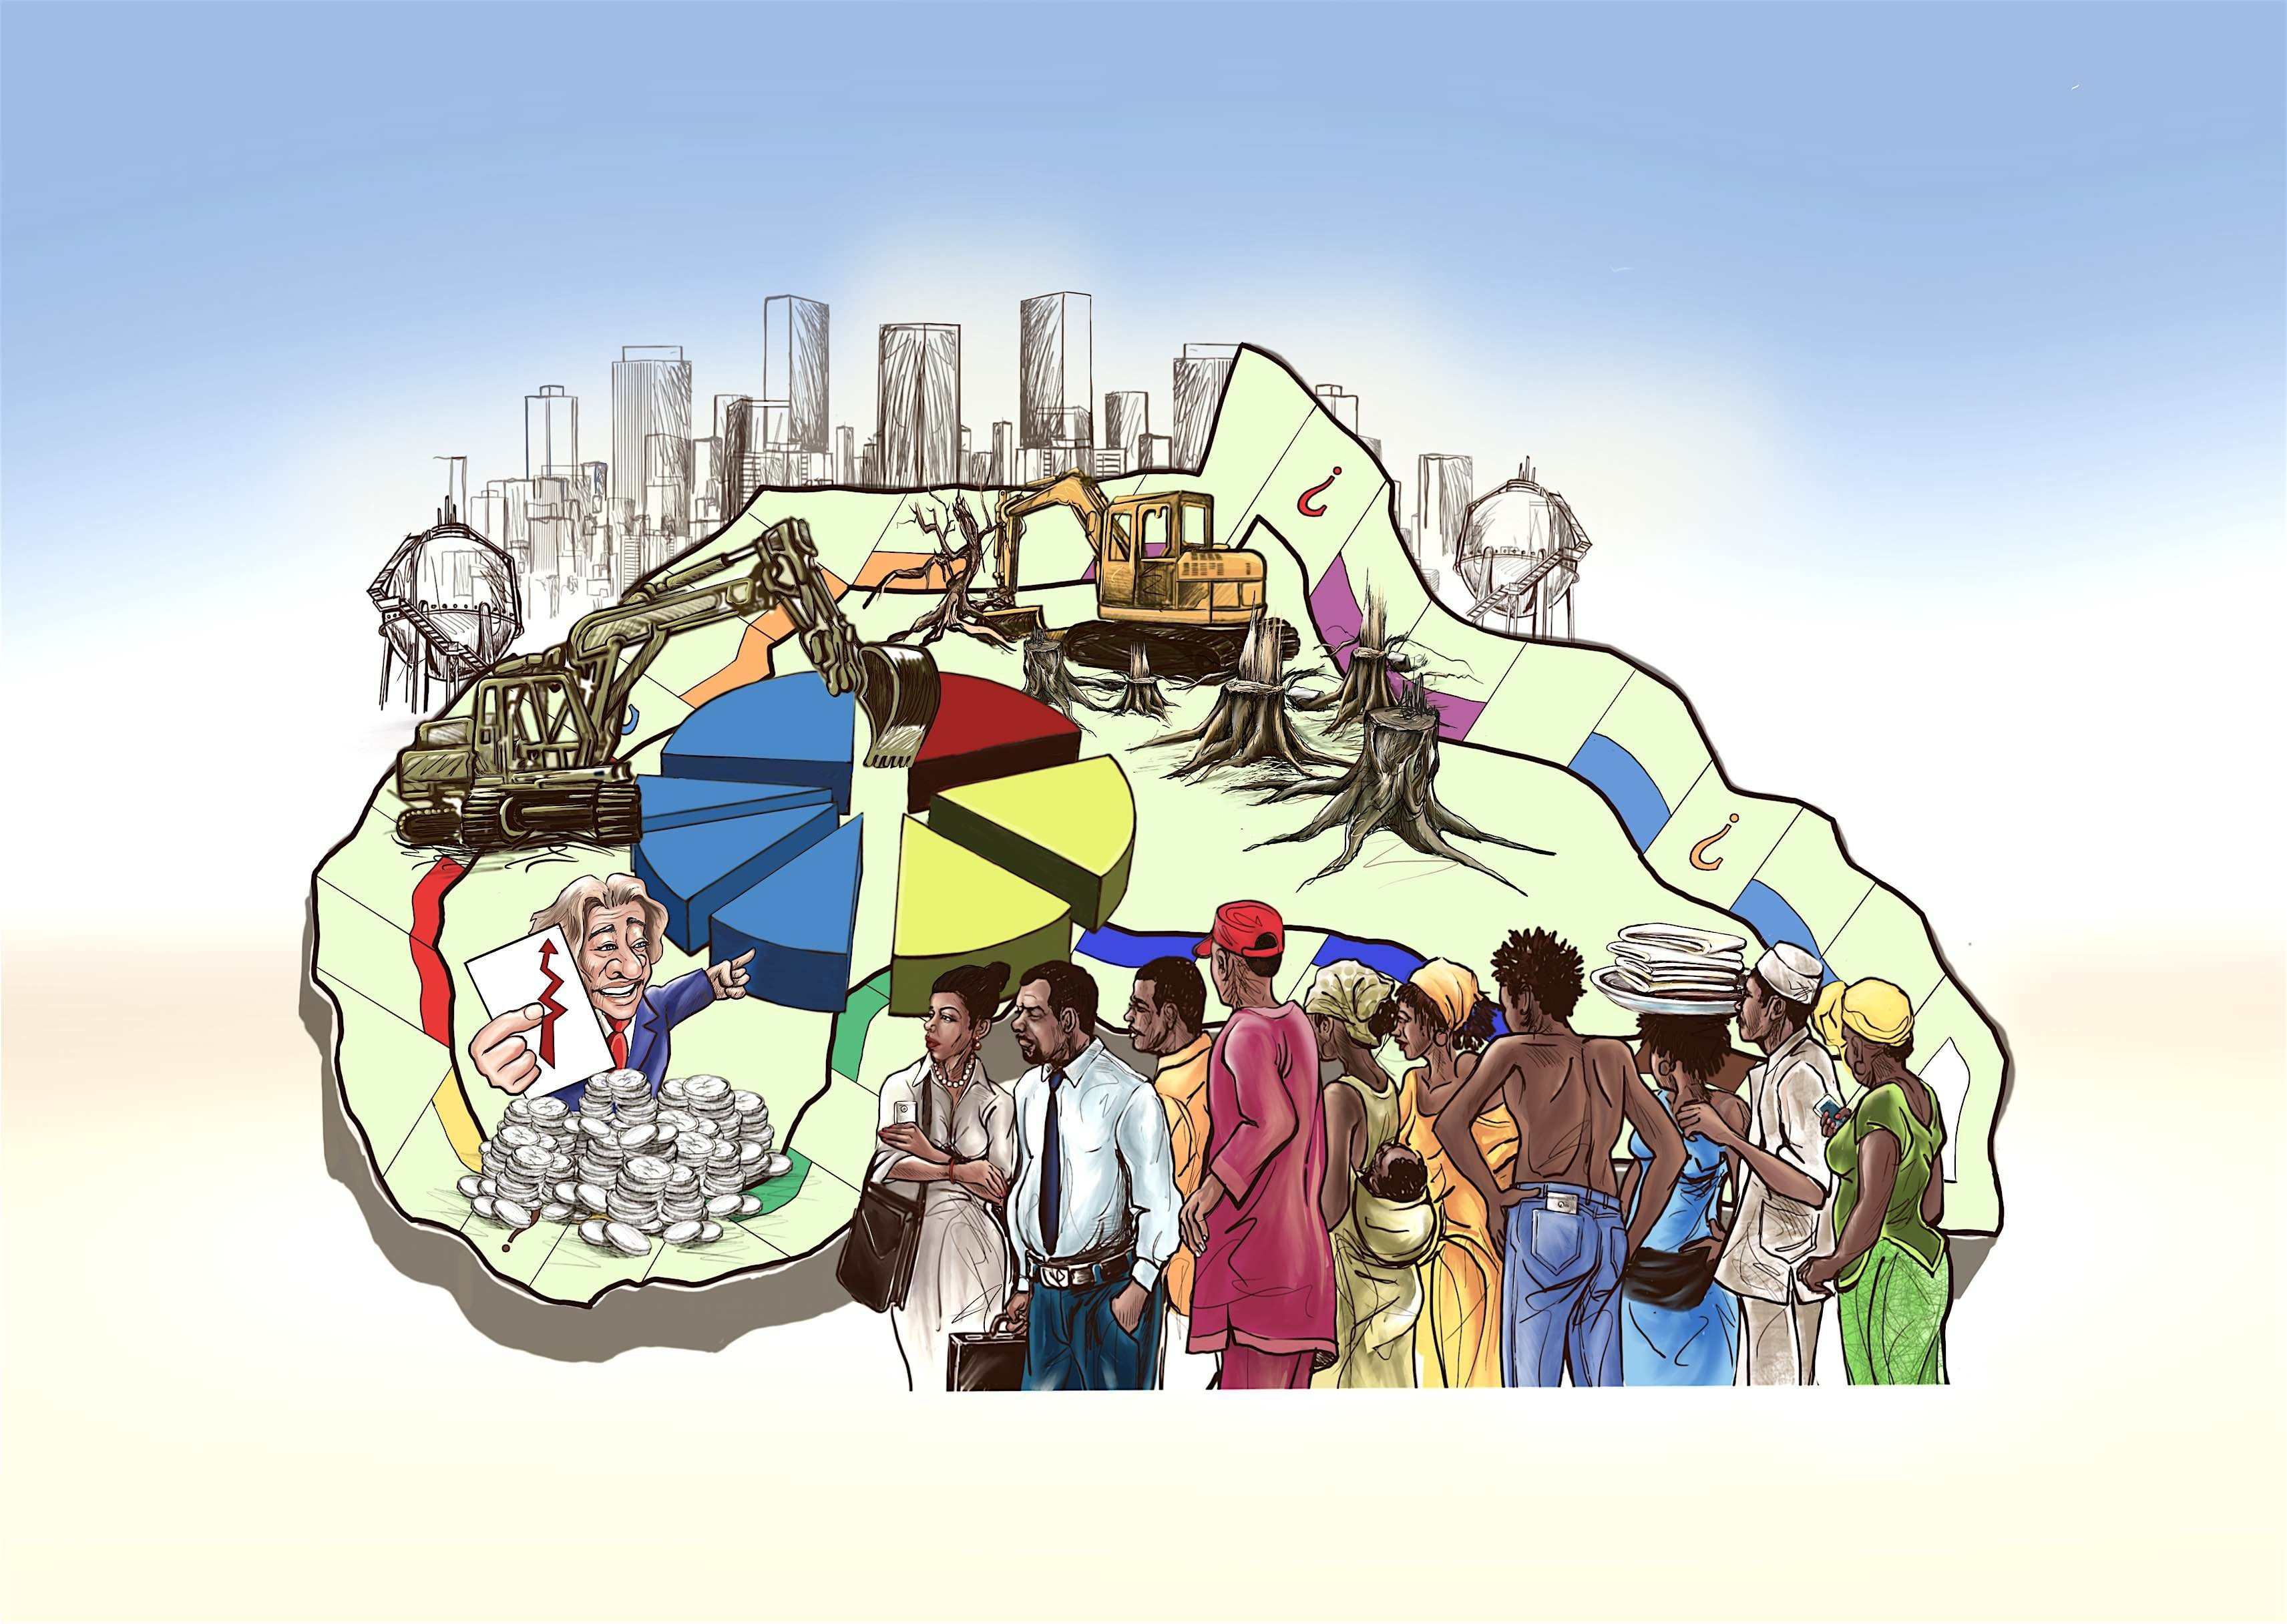 Africa poised for greatness — but governments must act fast